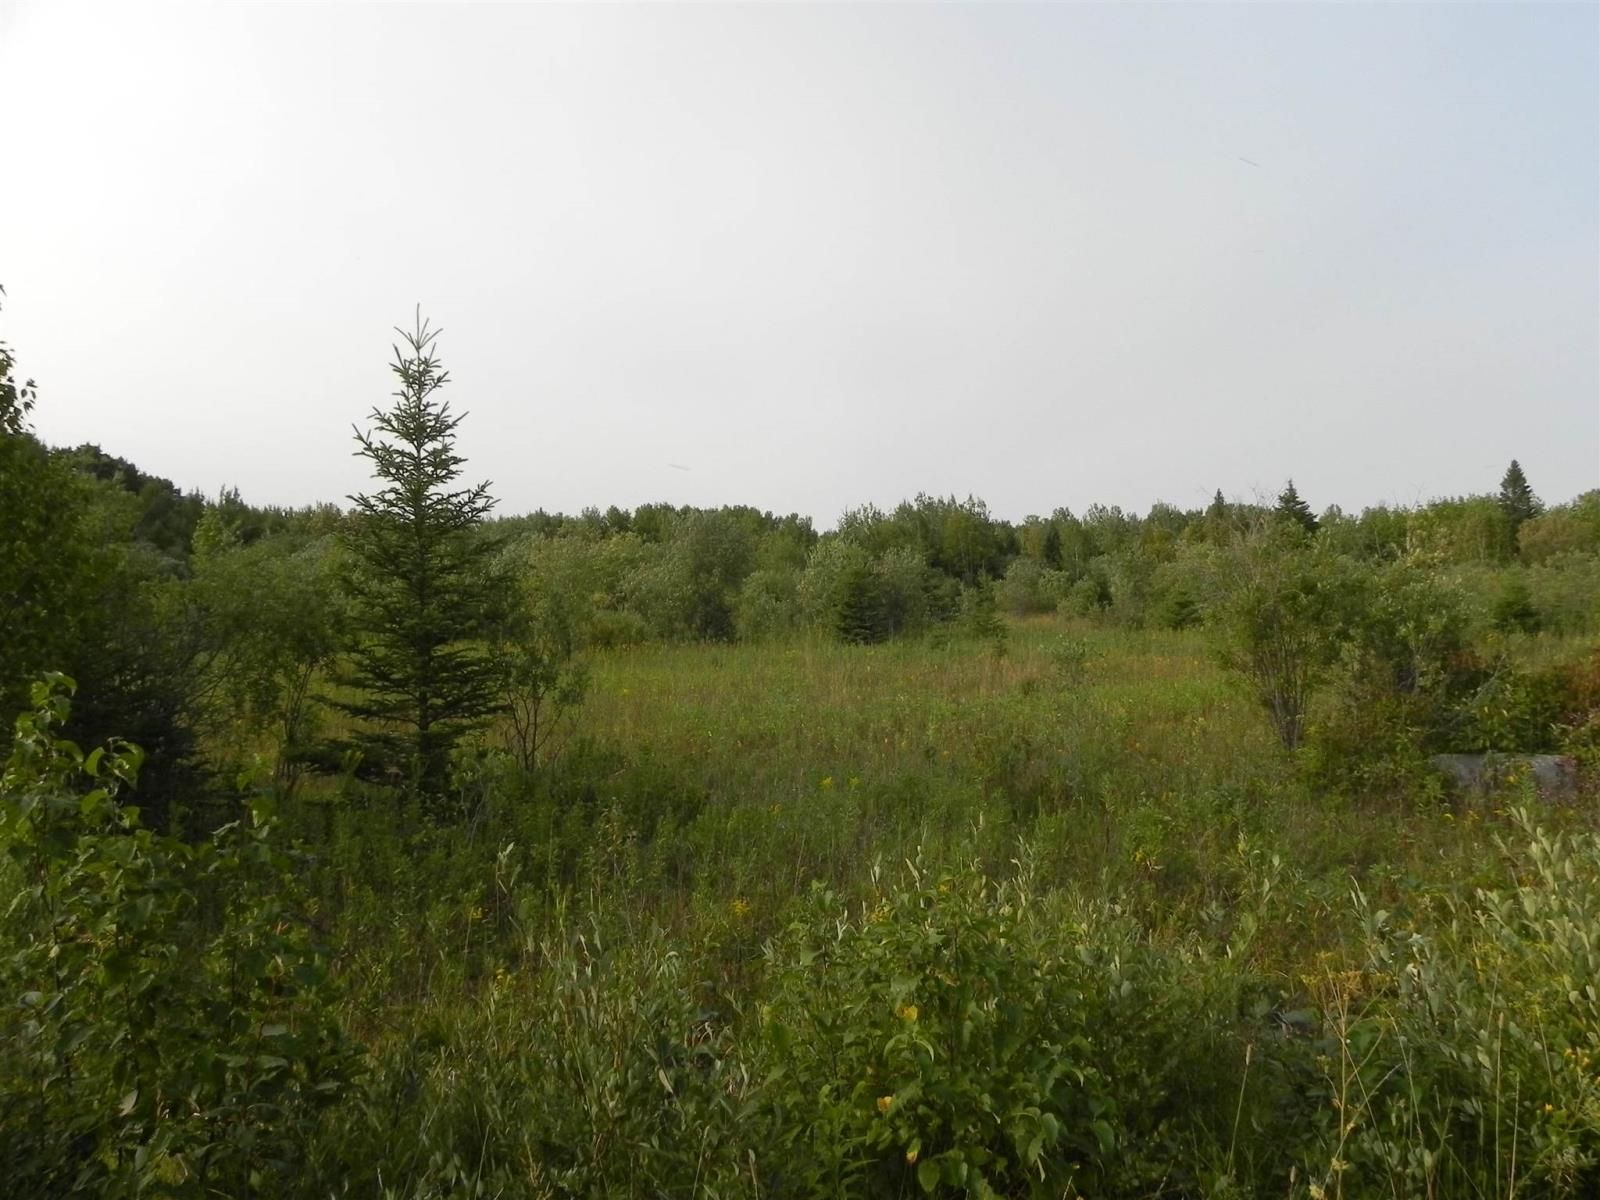 Main Photo: 22084 PT 2 PARCEL, WHITMORE RD in FORT FRANCES: Vacant Land for sale : MLS®# TB212402